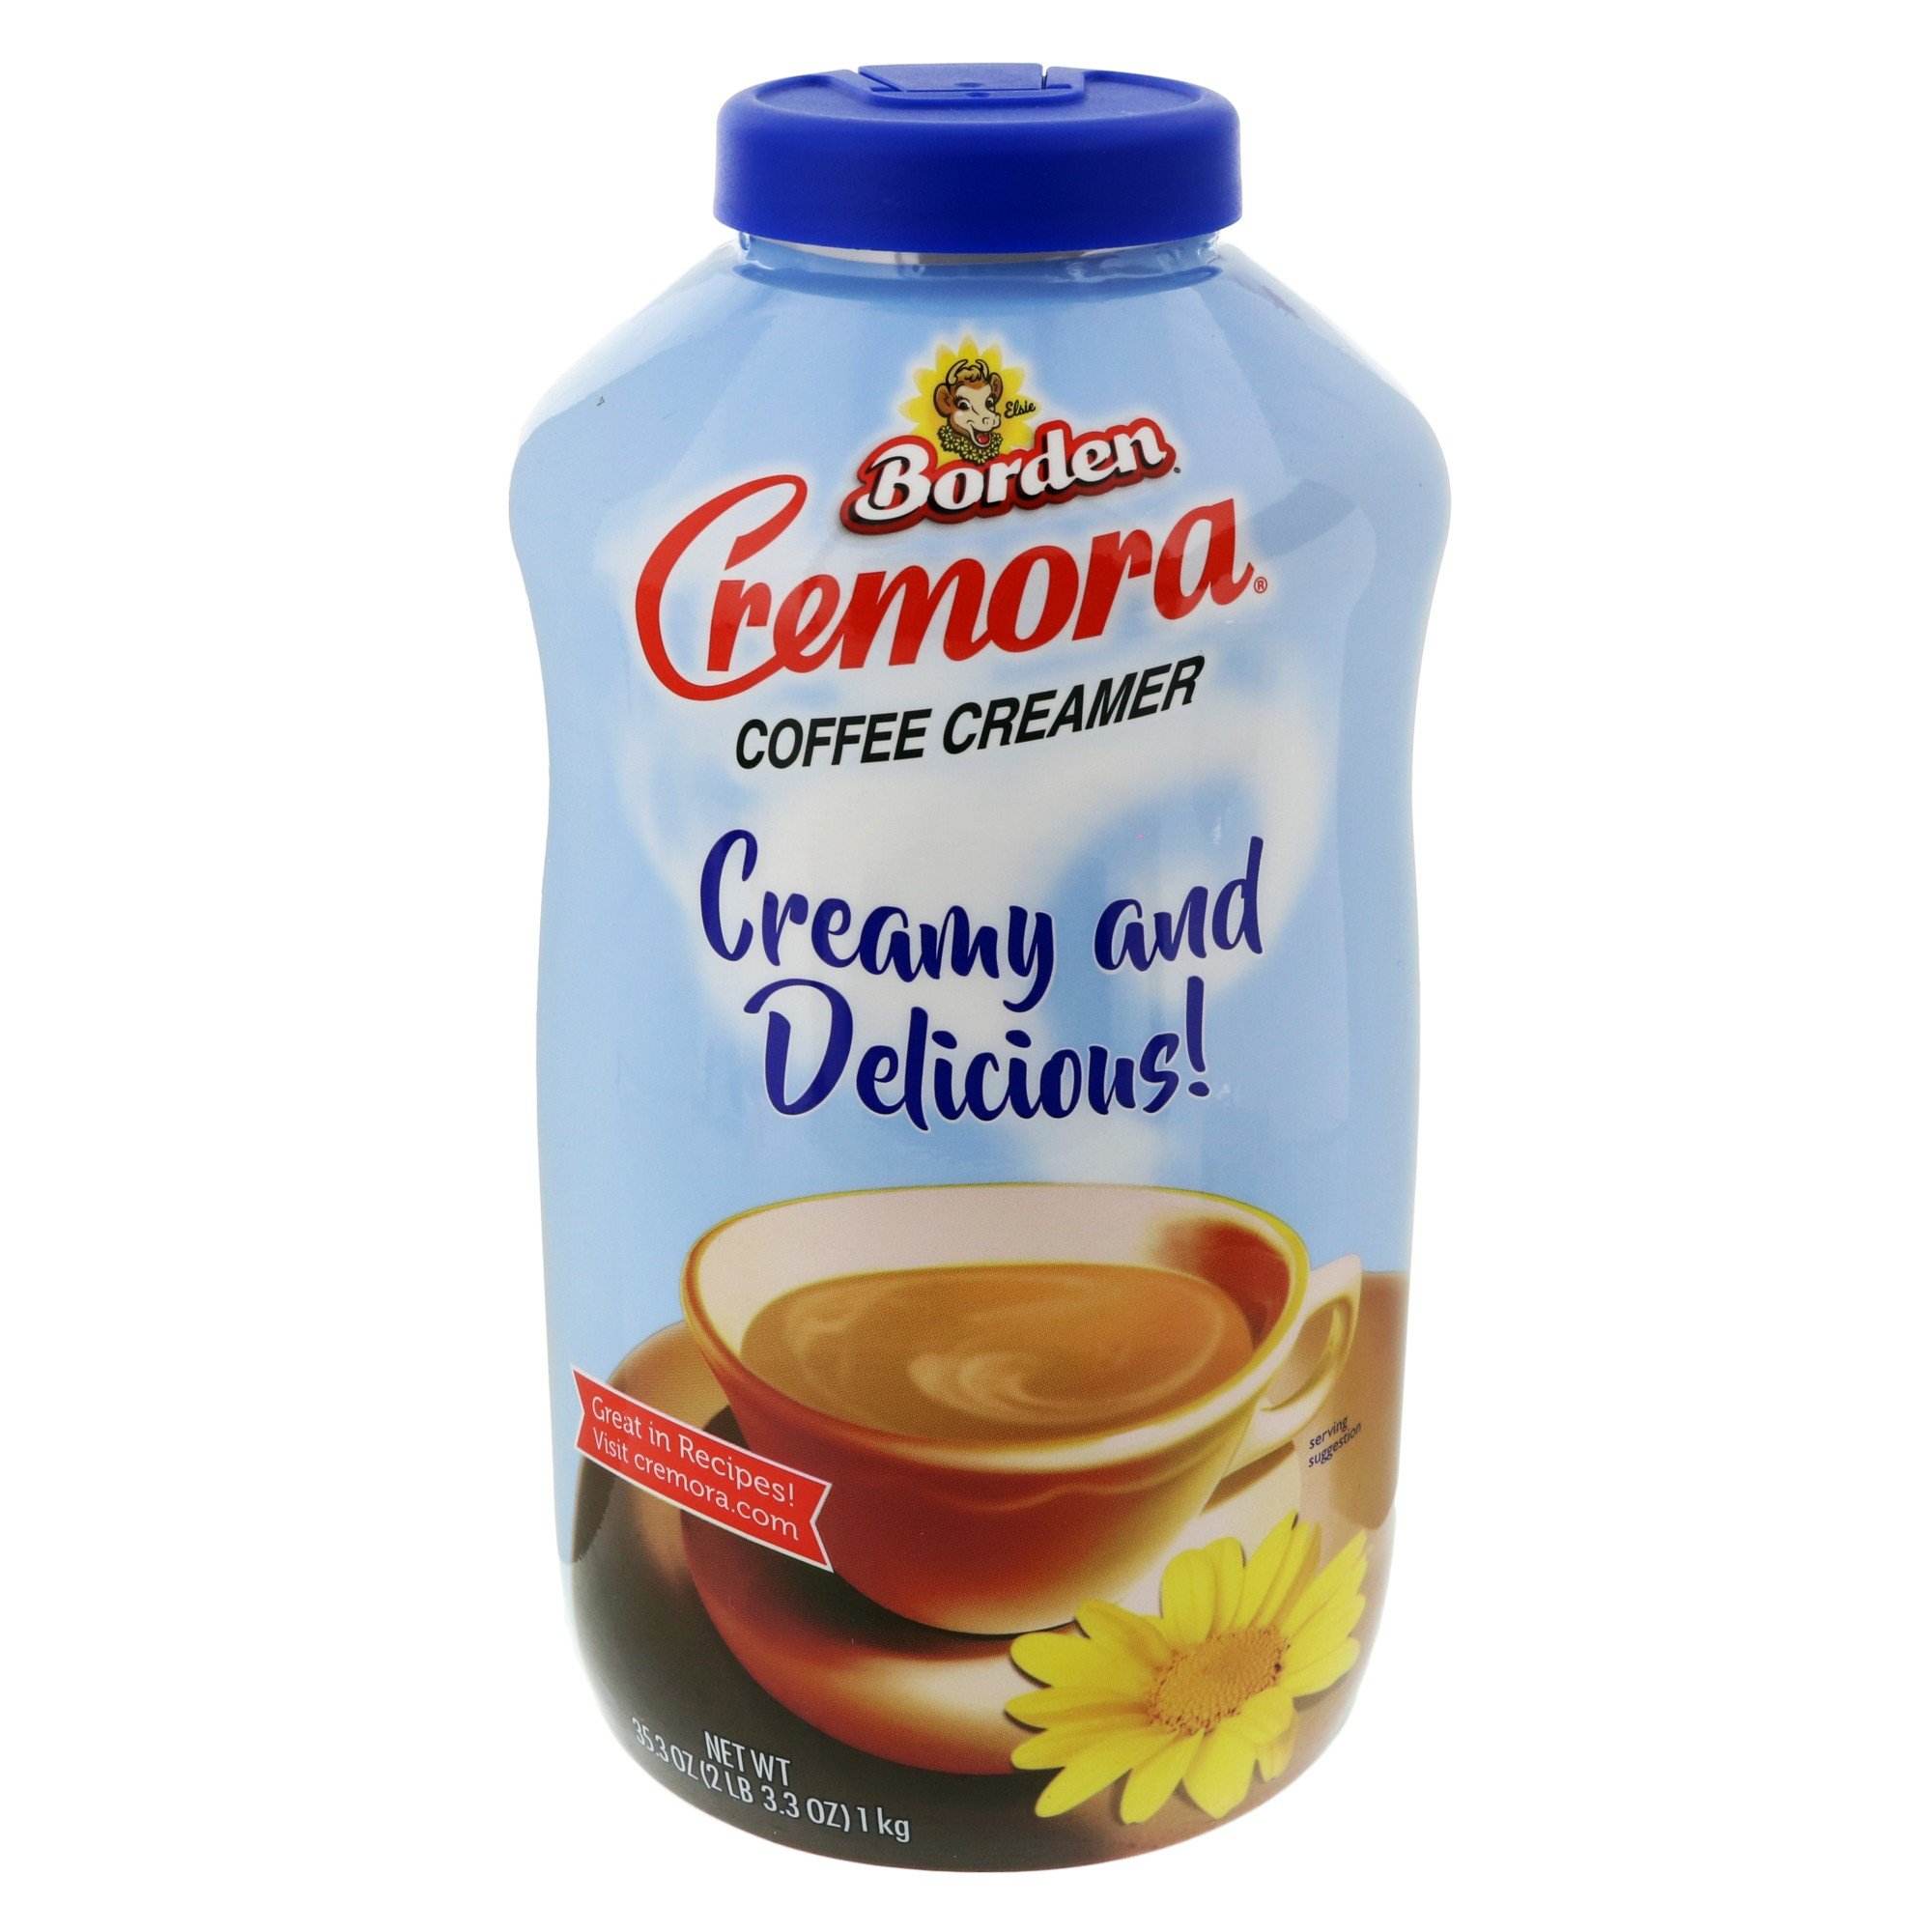 Borden, Cremora, Non-Dairy Creamer, 35.3oz Bottle by Borden